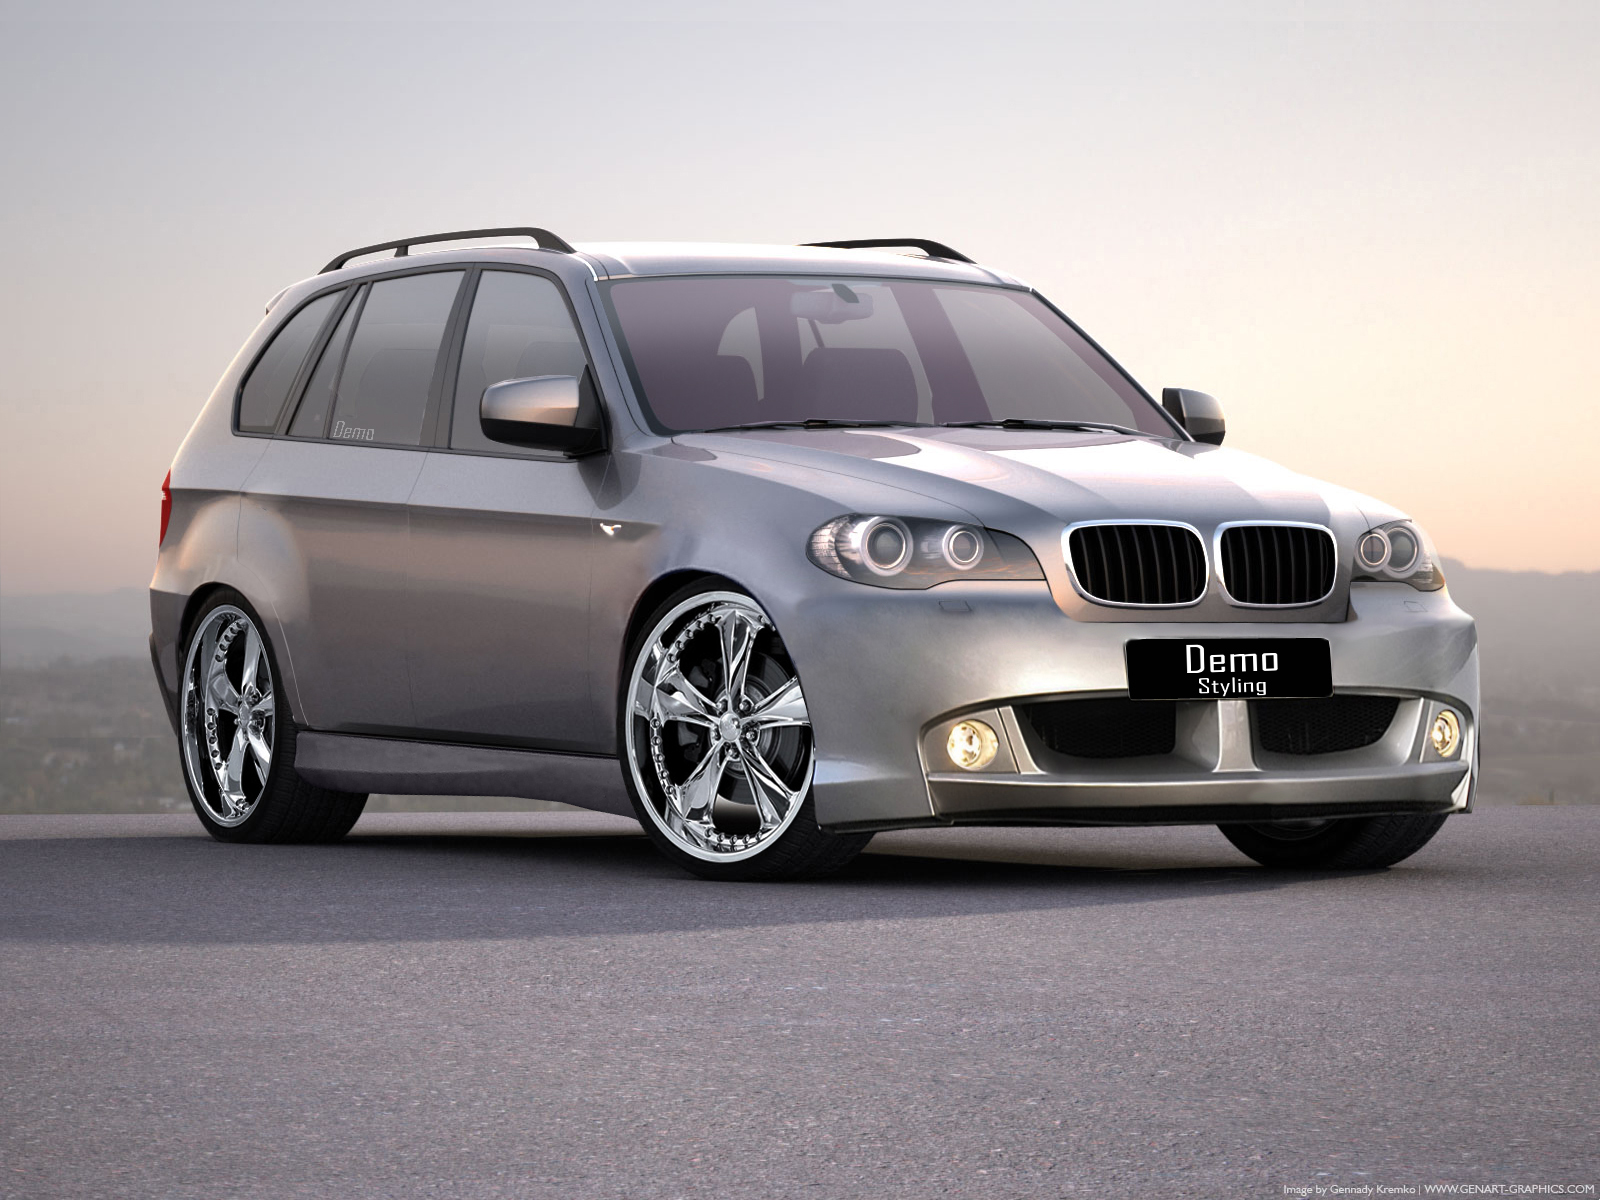 bmw x5 tuning by lexusgs430 on deviantart. Black Bedroom Furniture Sets. Home Design Ideas